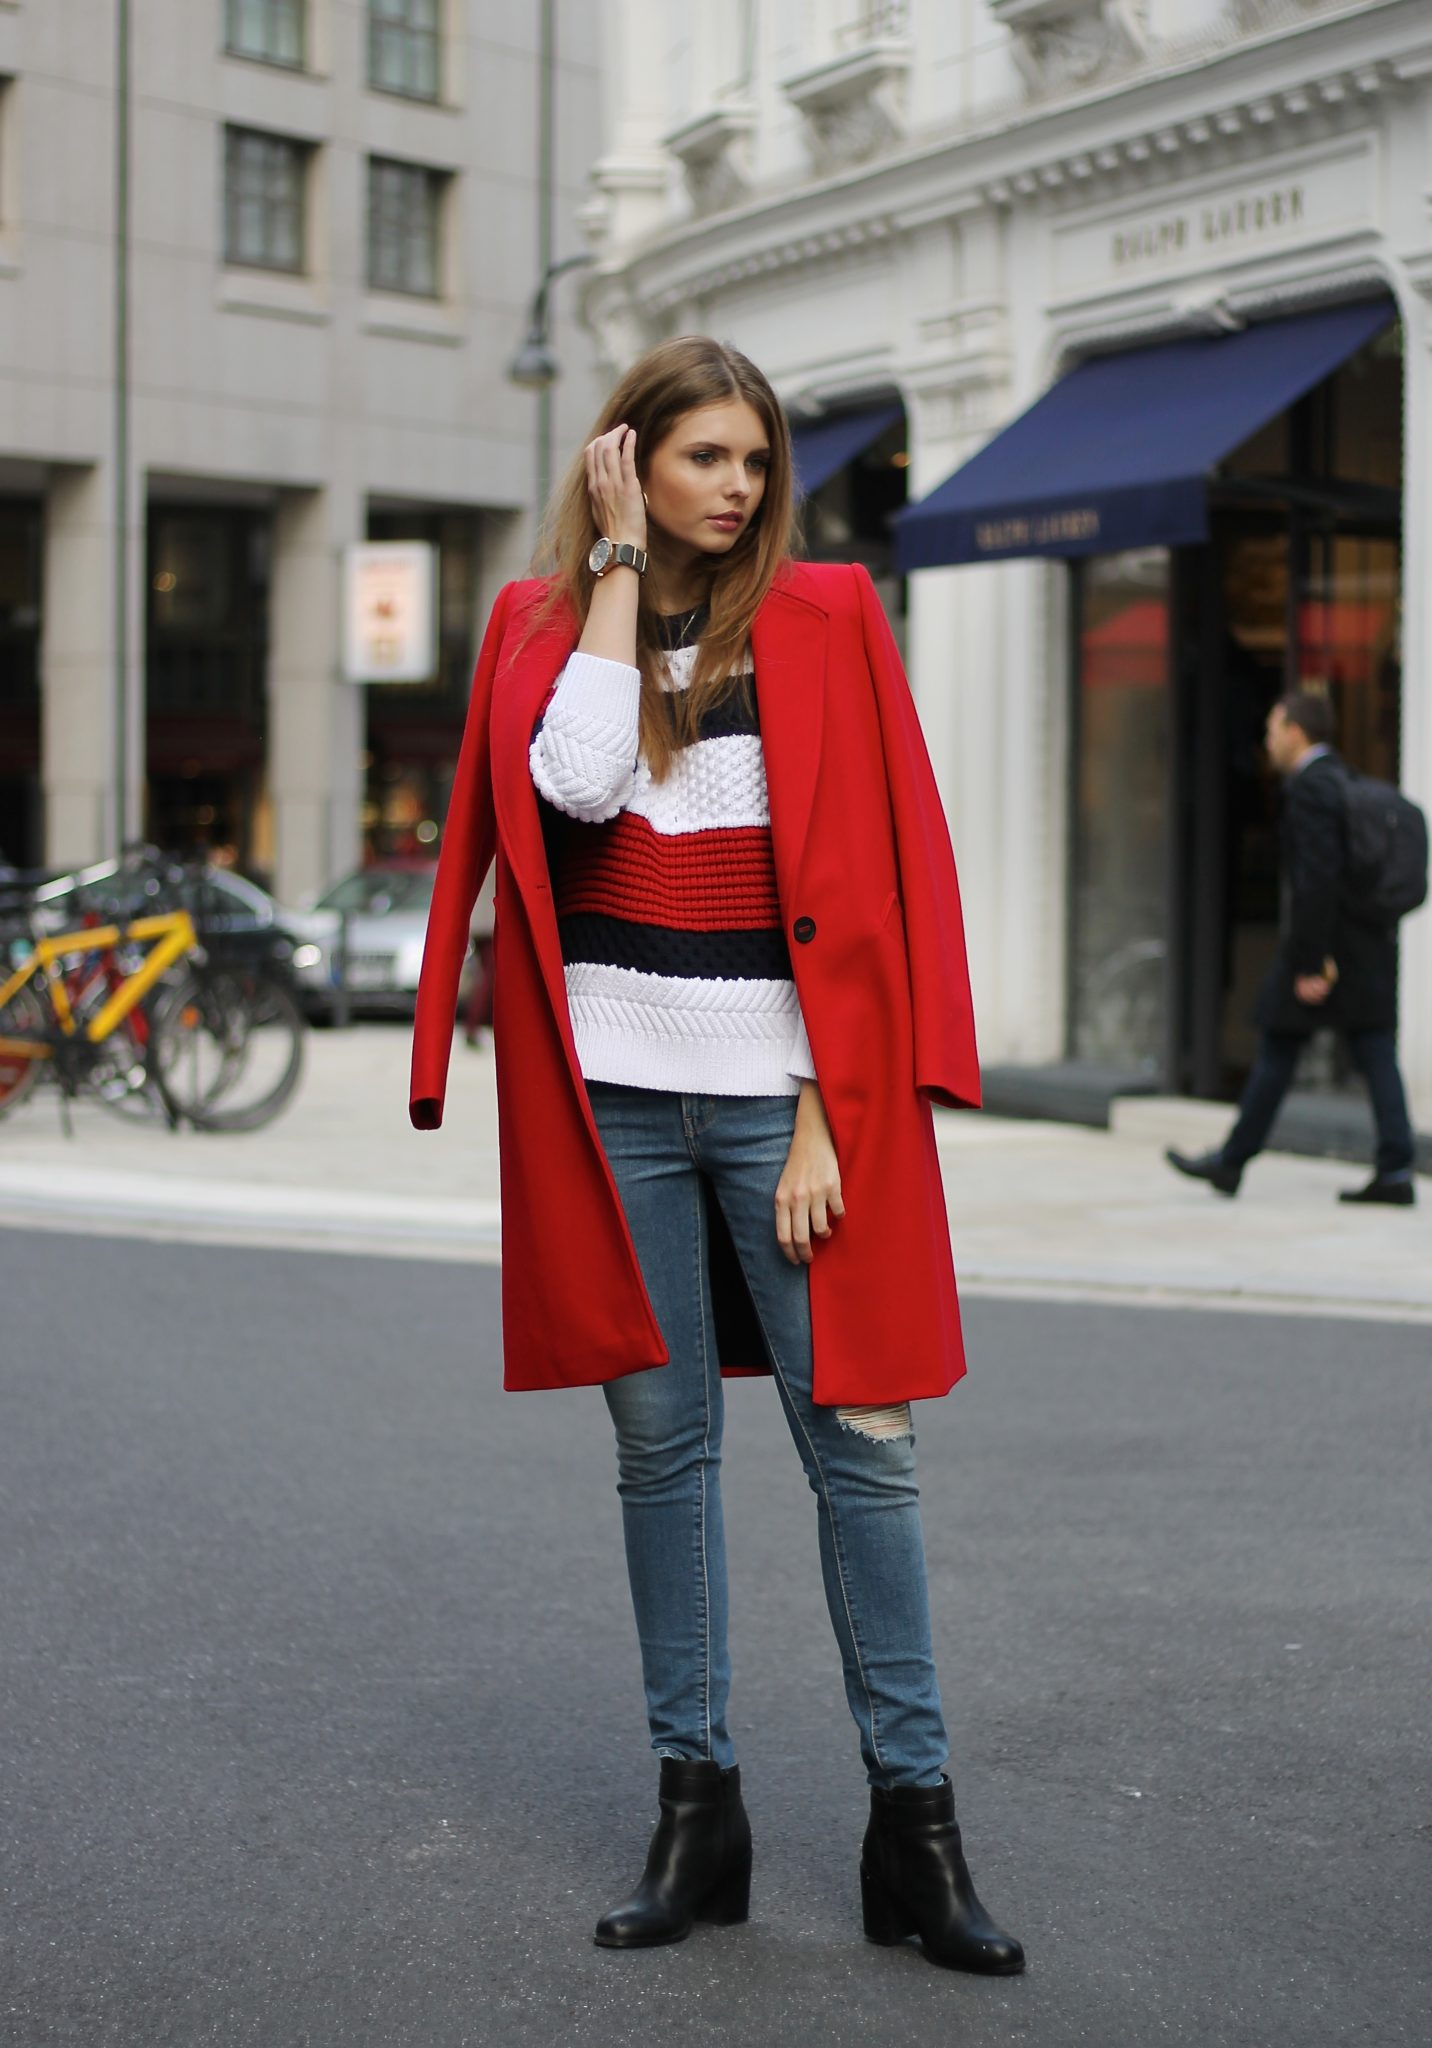 IMG 3155 - COLORFUL AUTUMN x TOMMY HILFIGER